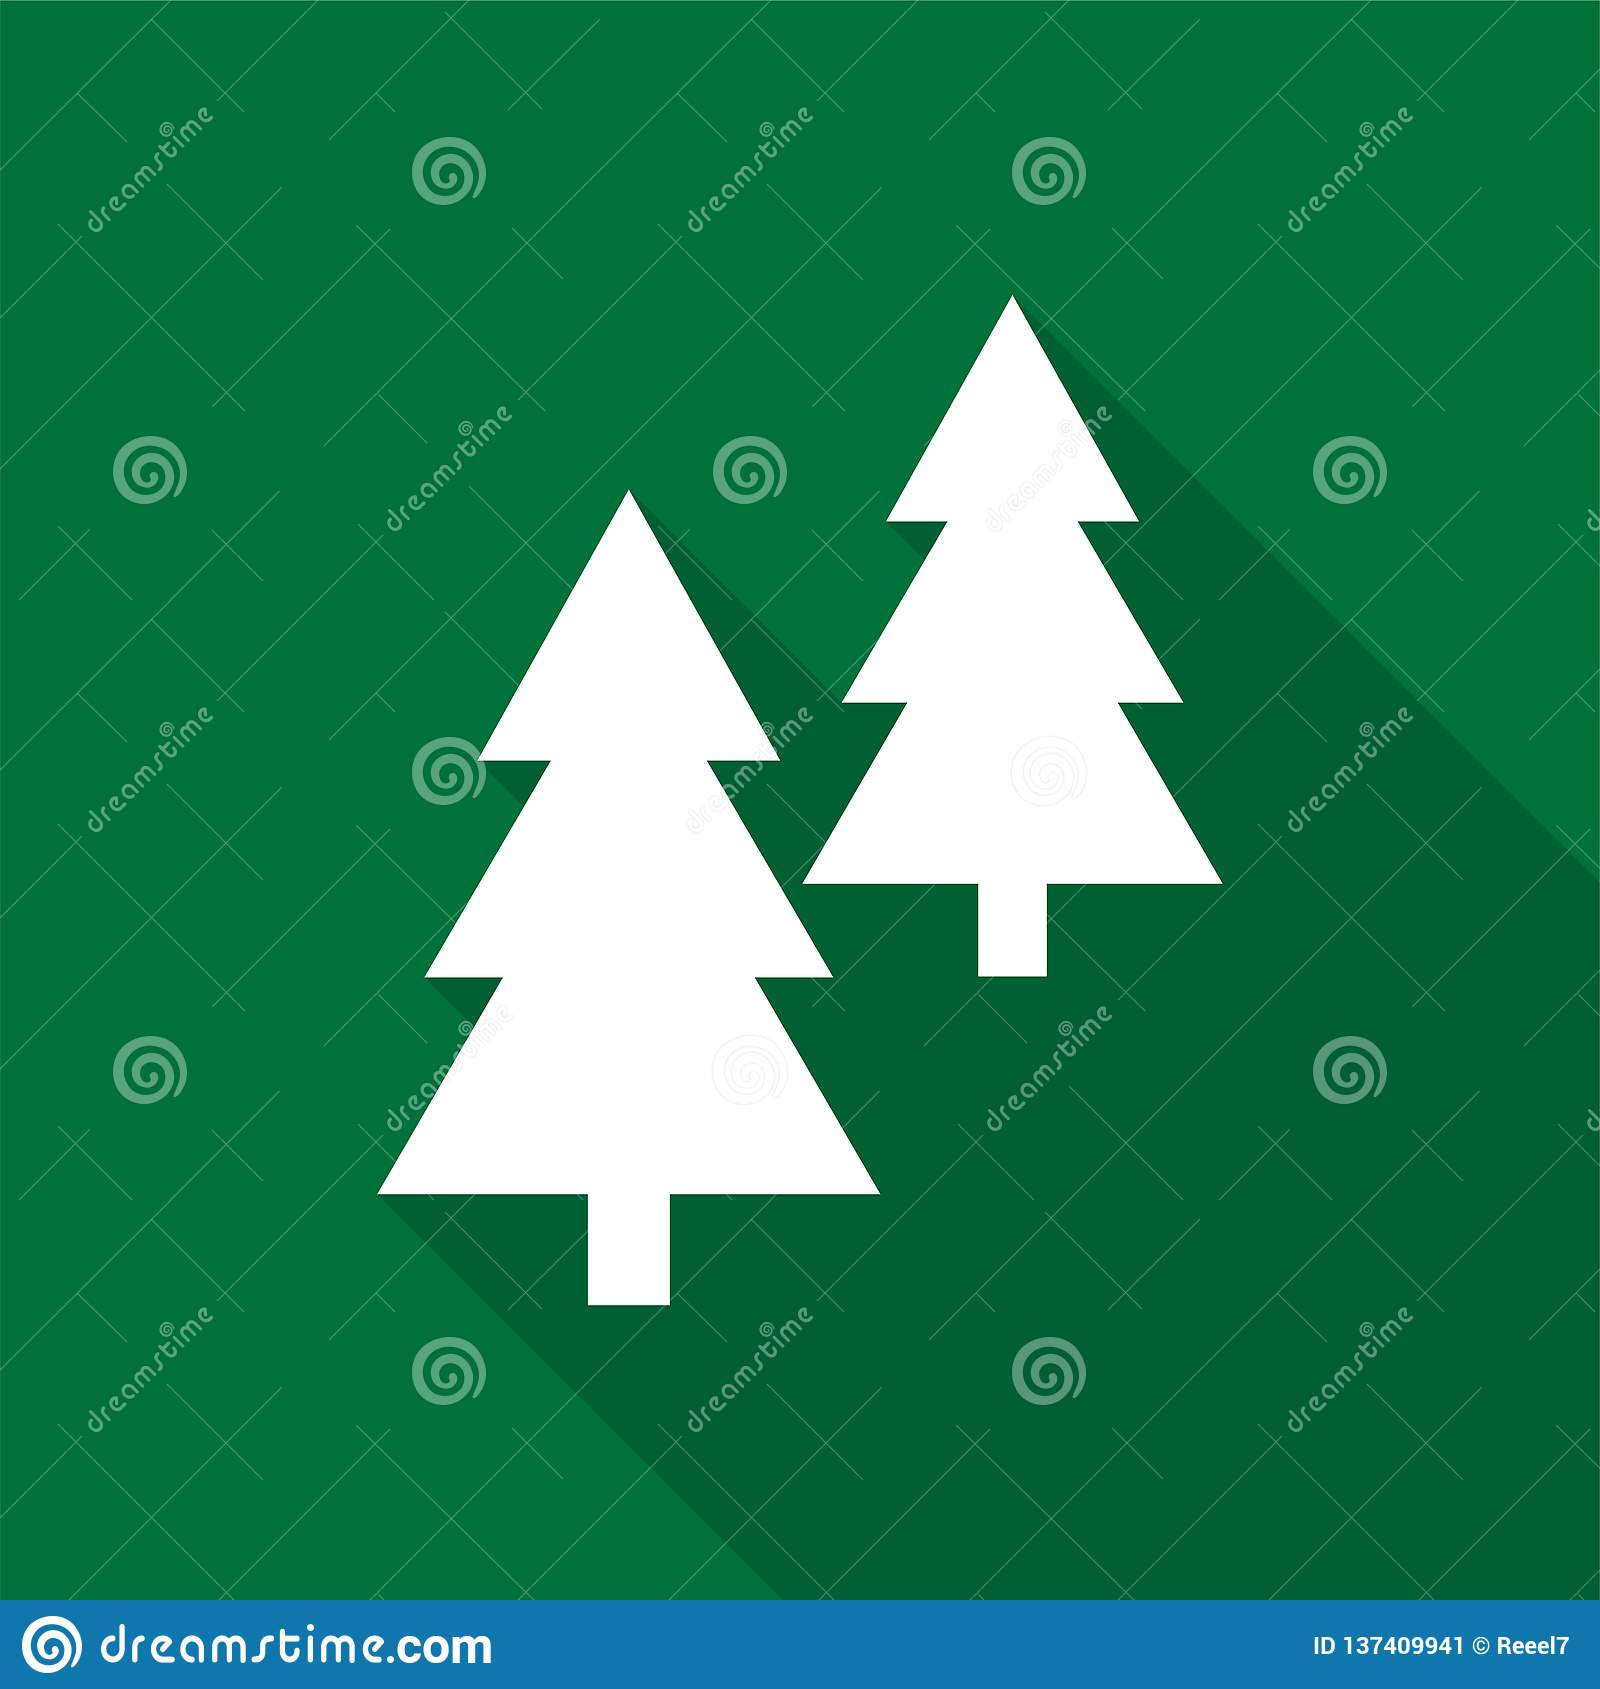 White coniferous trees icons with long shadow on green background.